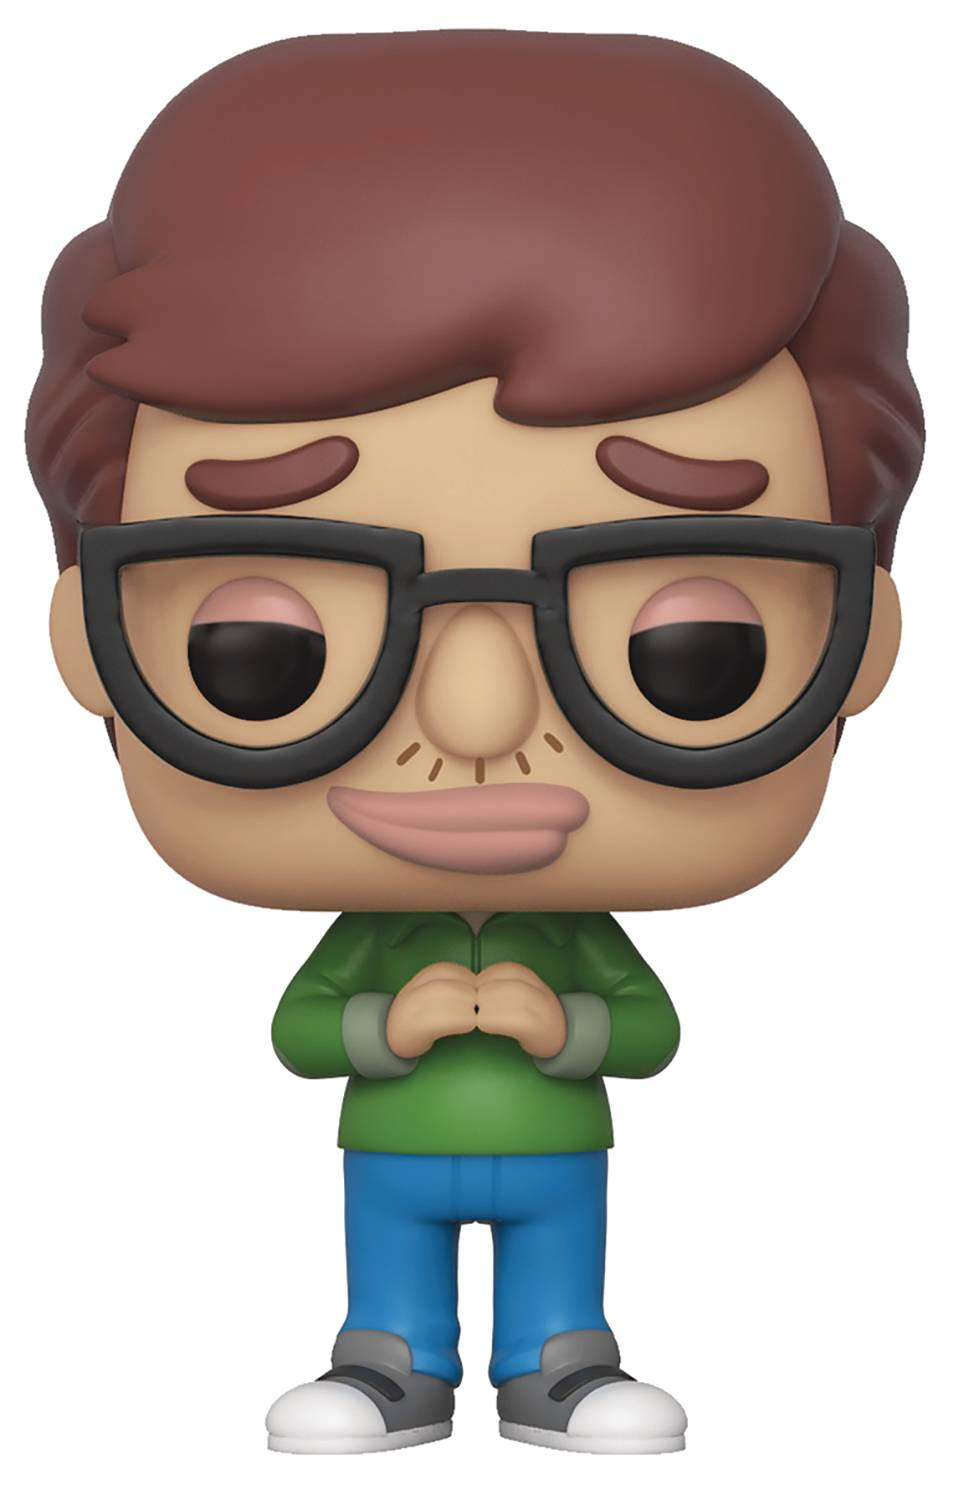 POP BIG MOUTH ANDREW VINYL FIG   889698321686